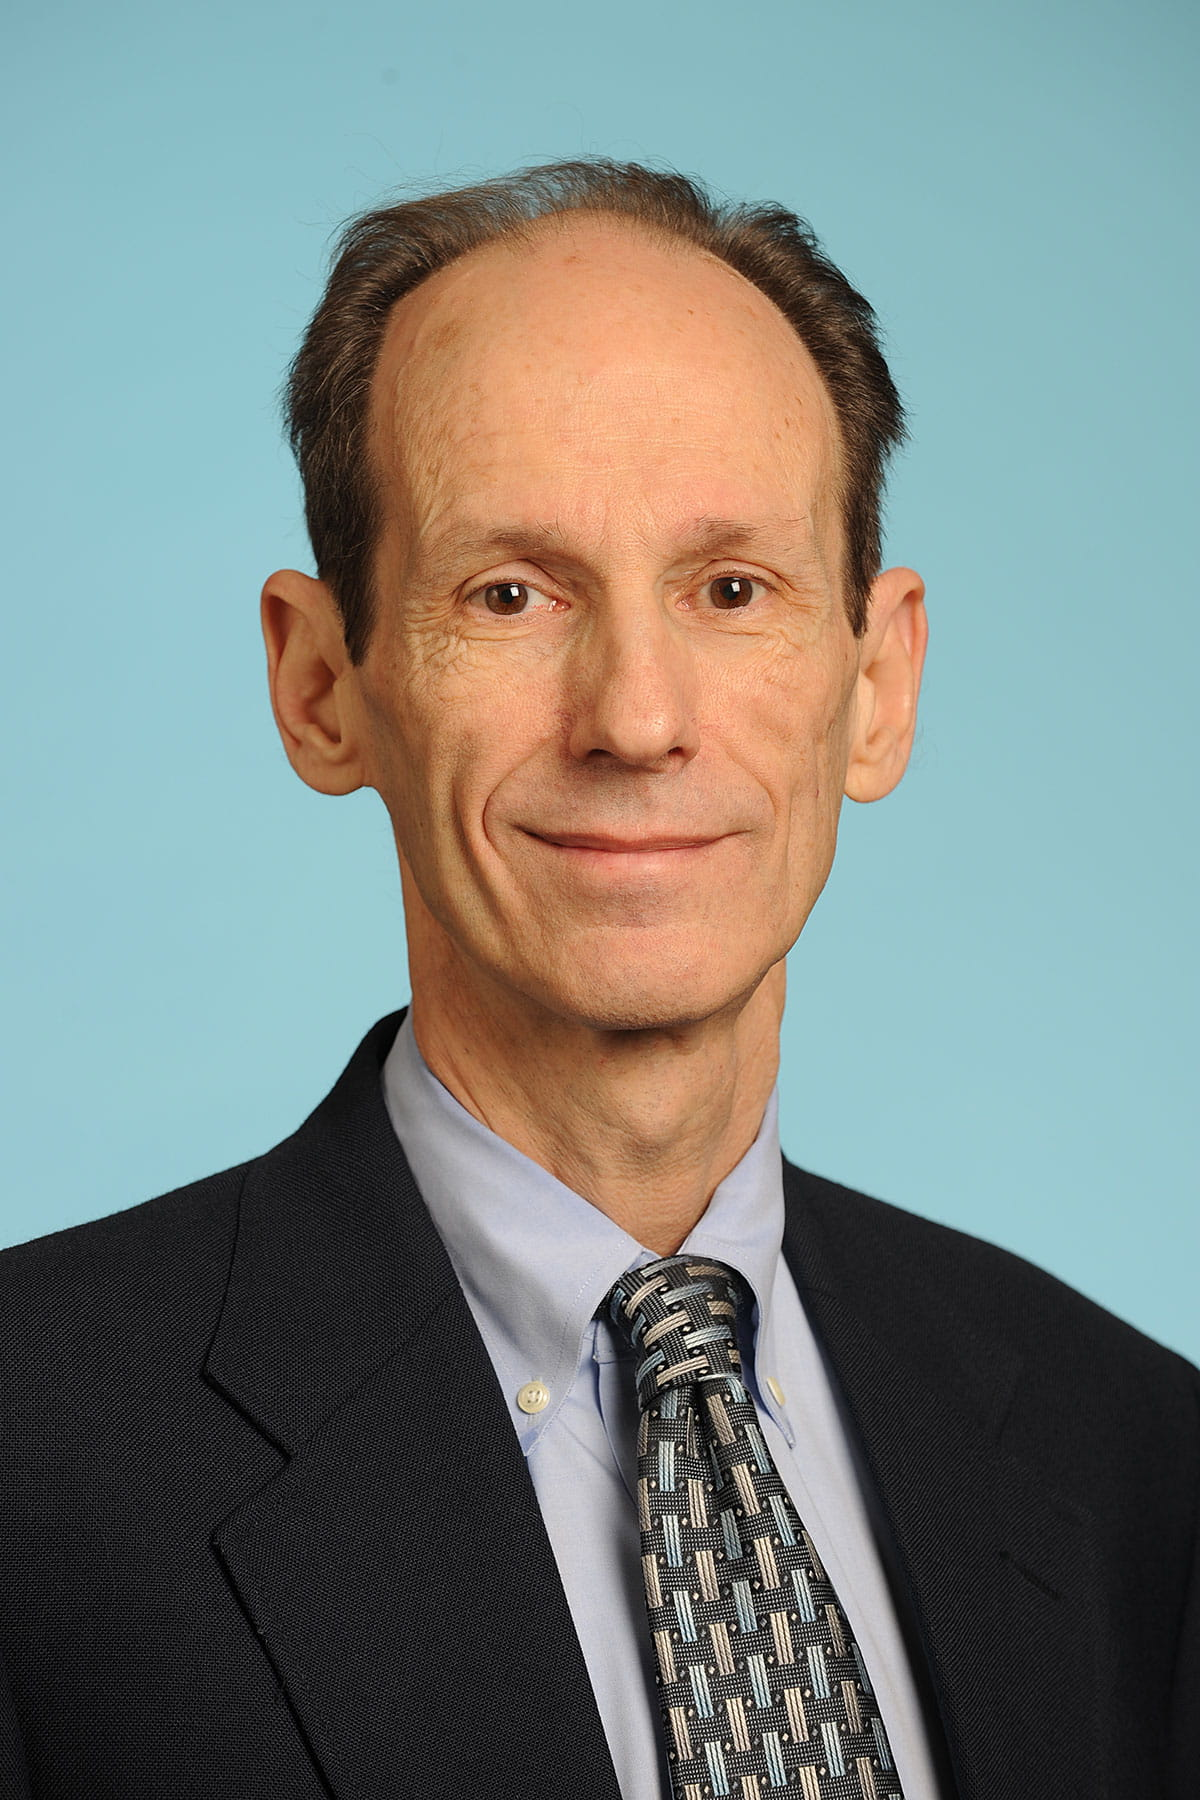 A photo of Mark Schapiro.